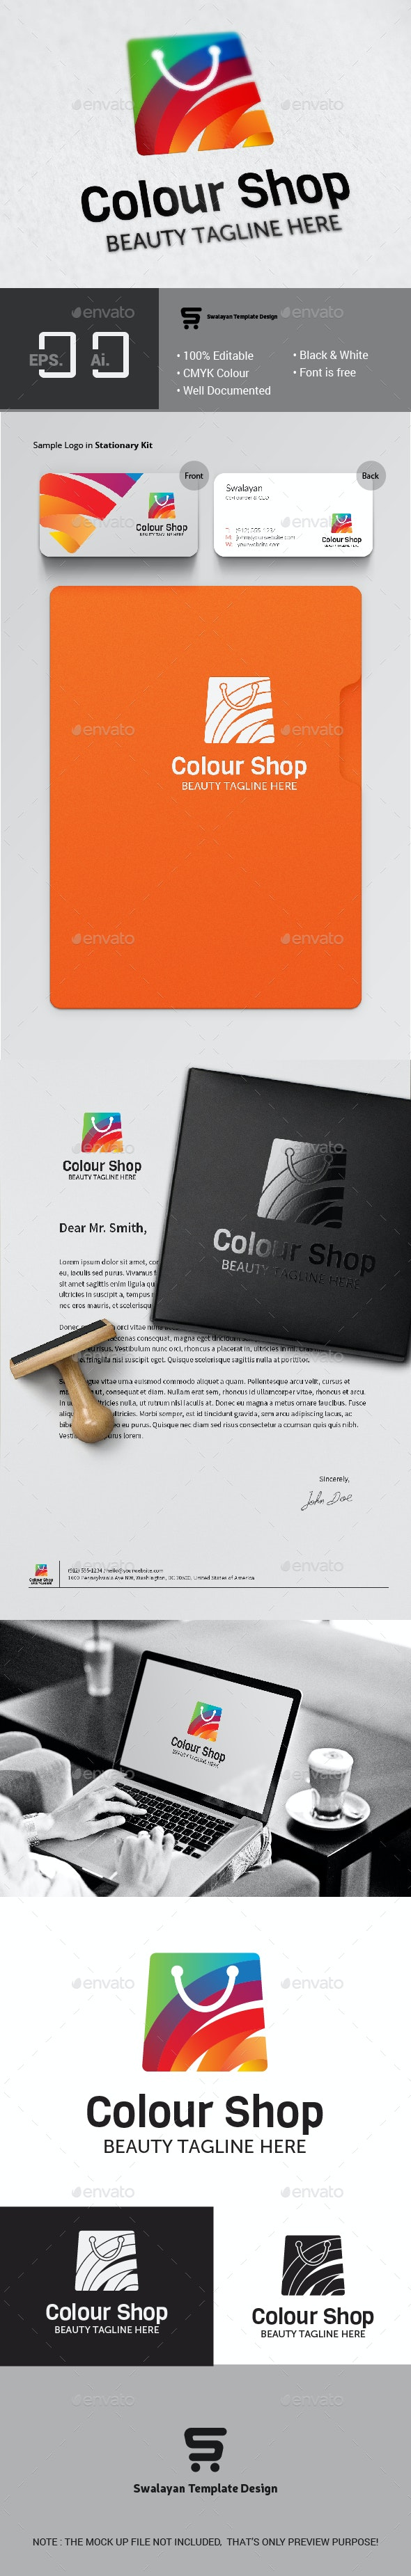 Colour Shop Logo - Abstract Logo Templates